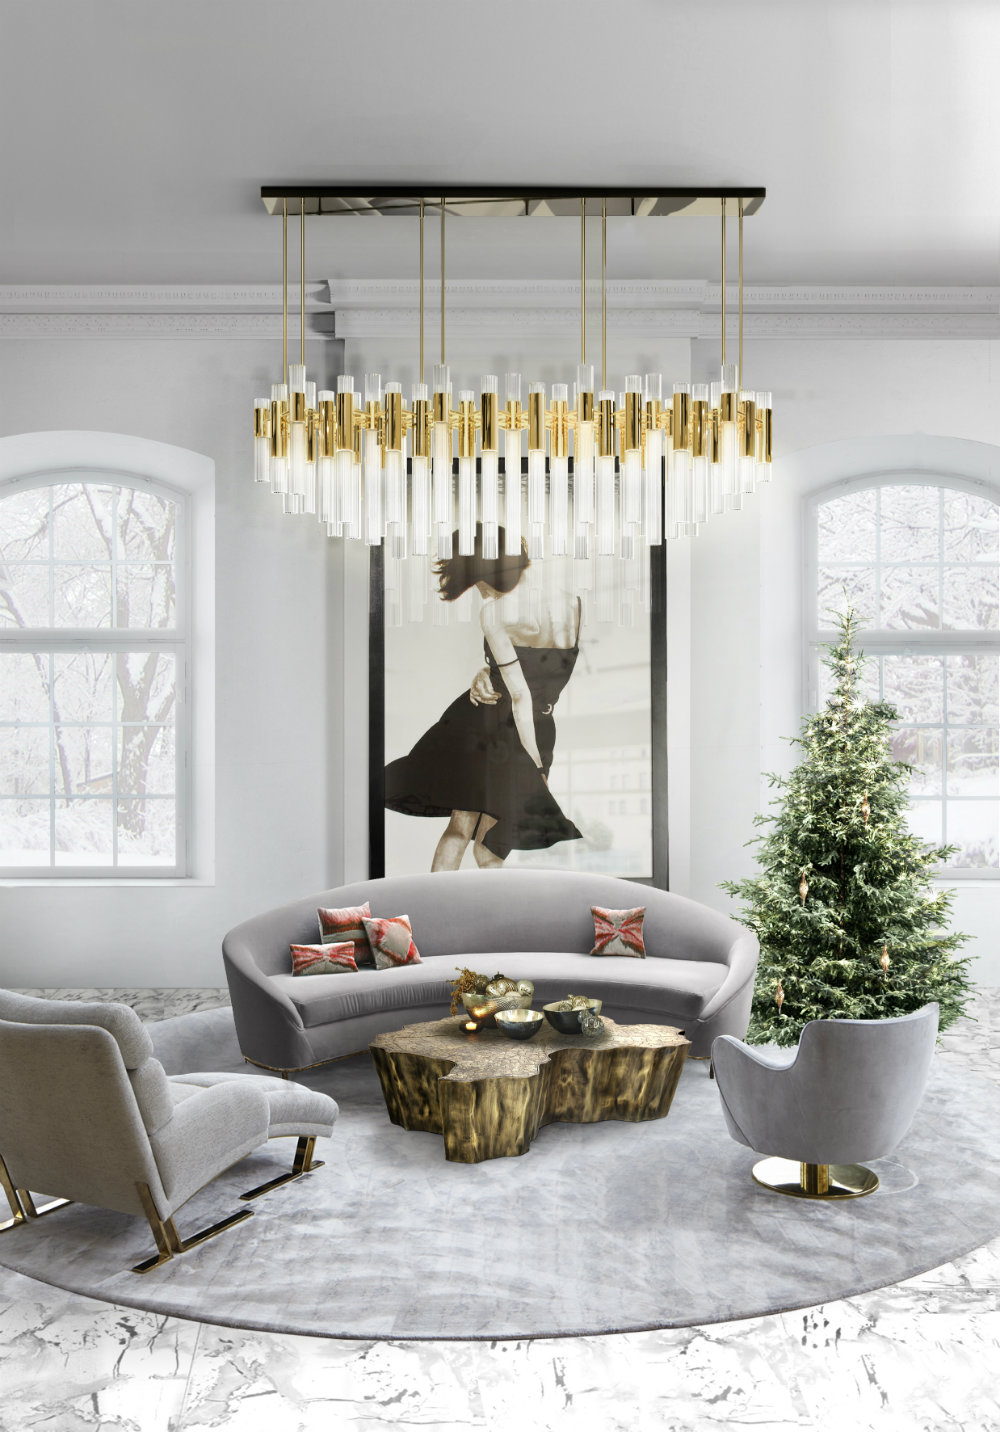 "The Best Luxury Gift Guide for Interior Design Lovers Chandelier Get inspired with the free e-Book ""100 Luxury Chandeliers"" The Best Luxury Gift Guide for Interior Design Lovers 01 Chandelier Get inspired with the free e-Book ""100 Luxury Chandeliers"" The Best Luxury Gift Guide for Interior Design Lovers 01"